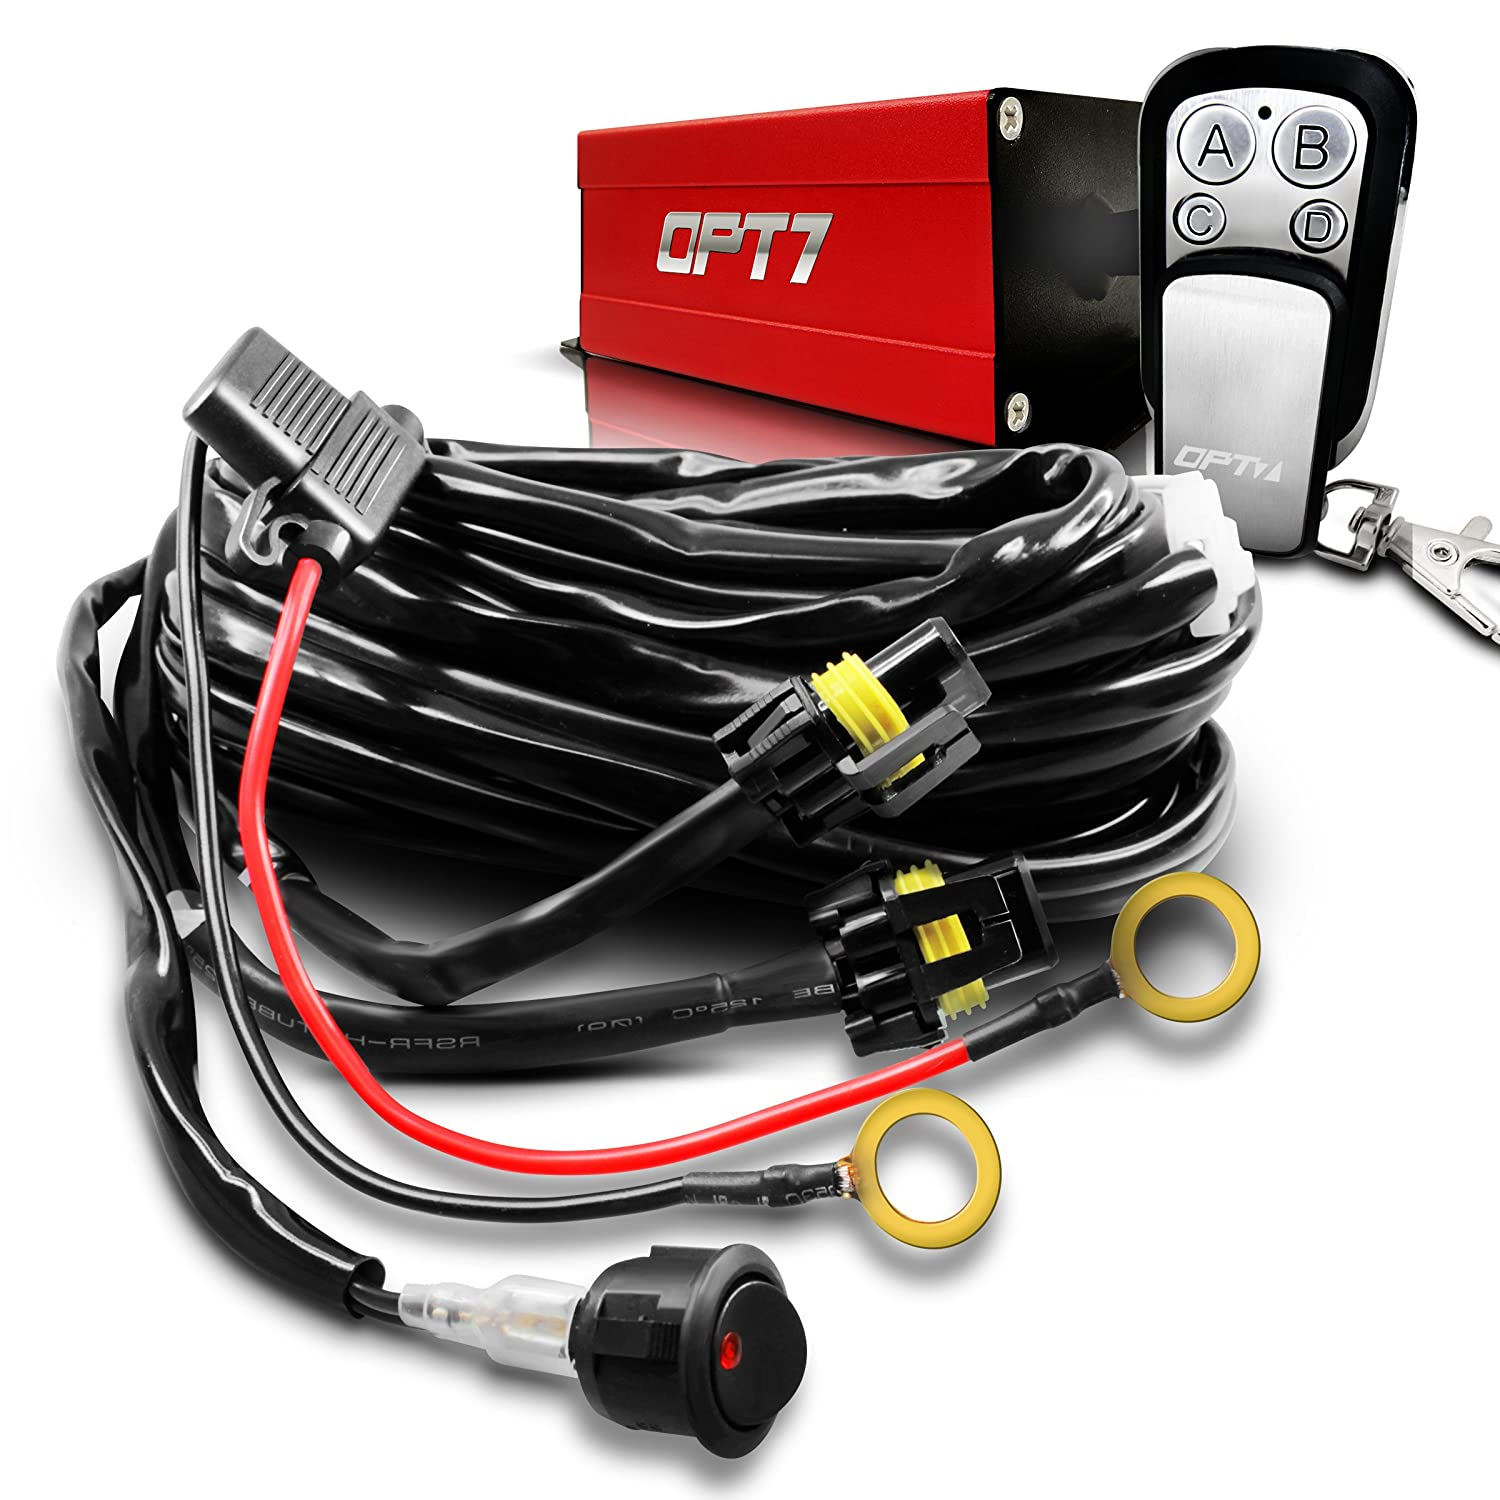 81N7E3oL3DL._SL1500_ amazon com wireless remote control universal wiring harness off independent control auxiliary lamp wire harness kit instructions at gsmx.co